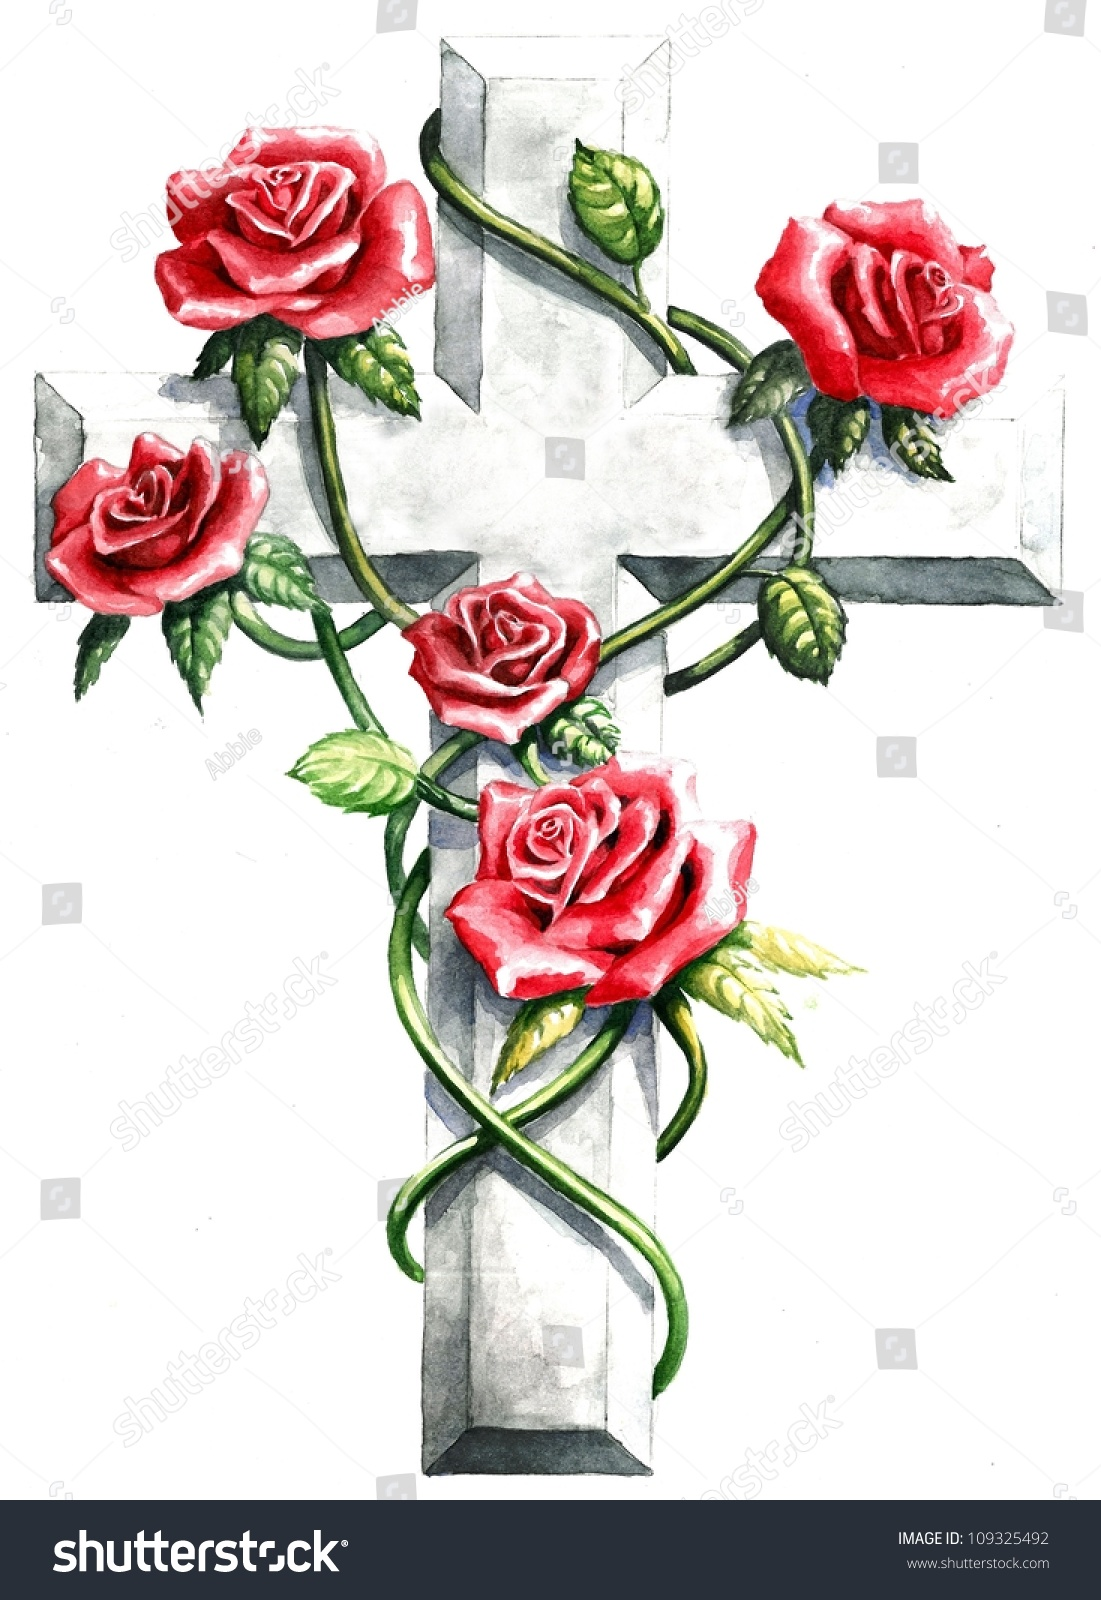 New images for 14/386026 Religious Funeral Clip Art & Related ...